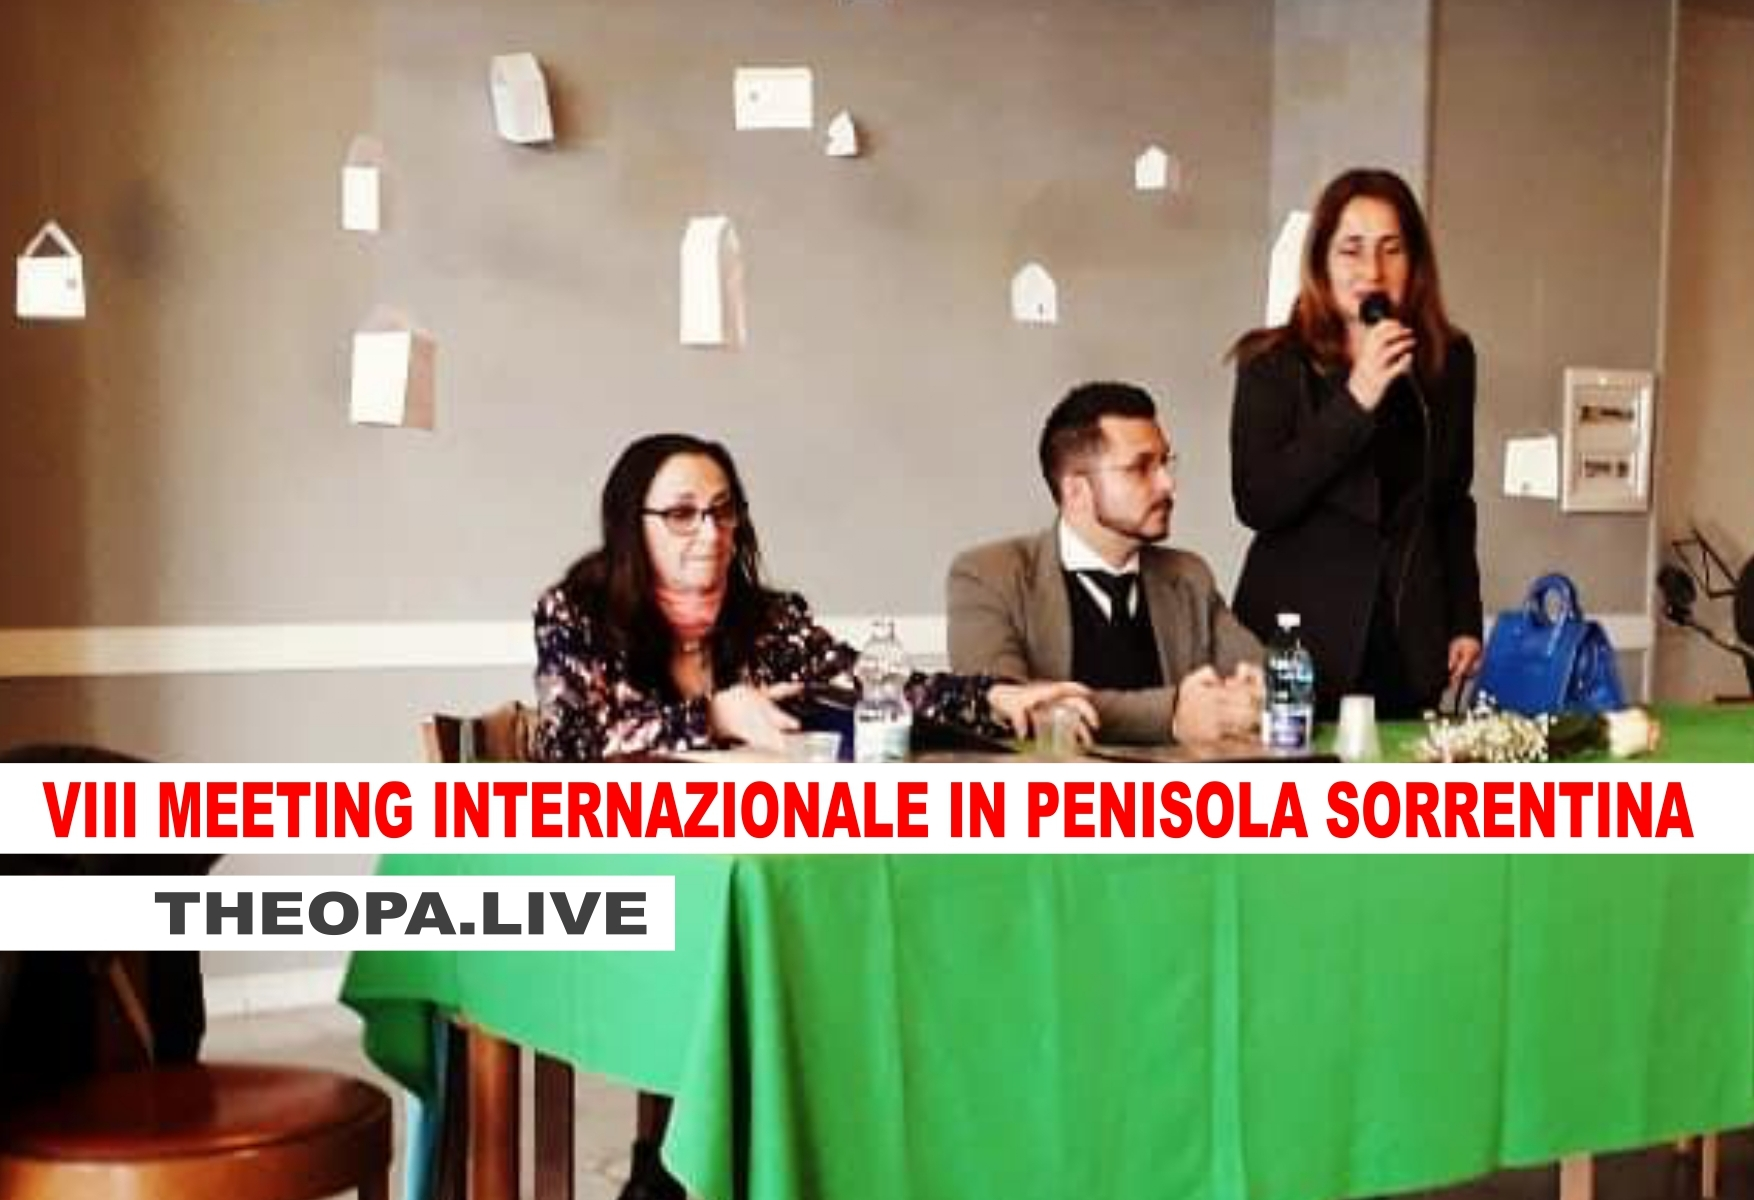 THEOPA A MEETING IN PENISOLA SORRENTINA